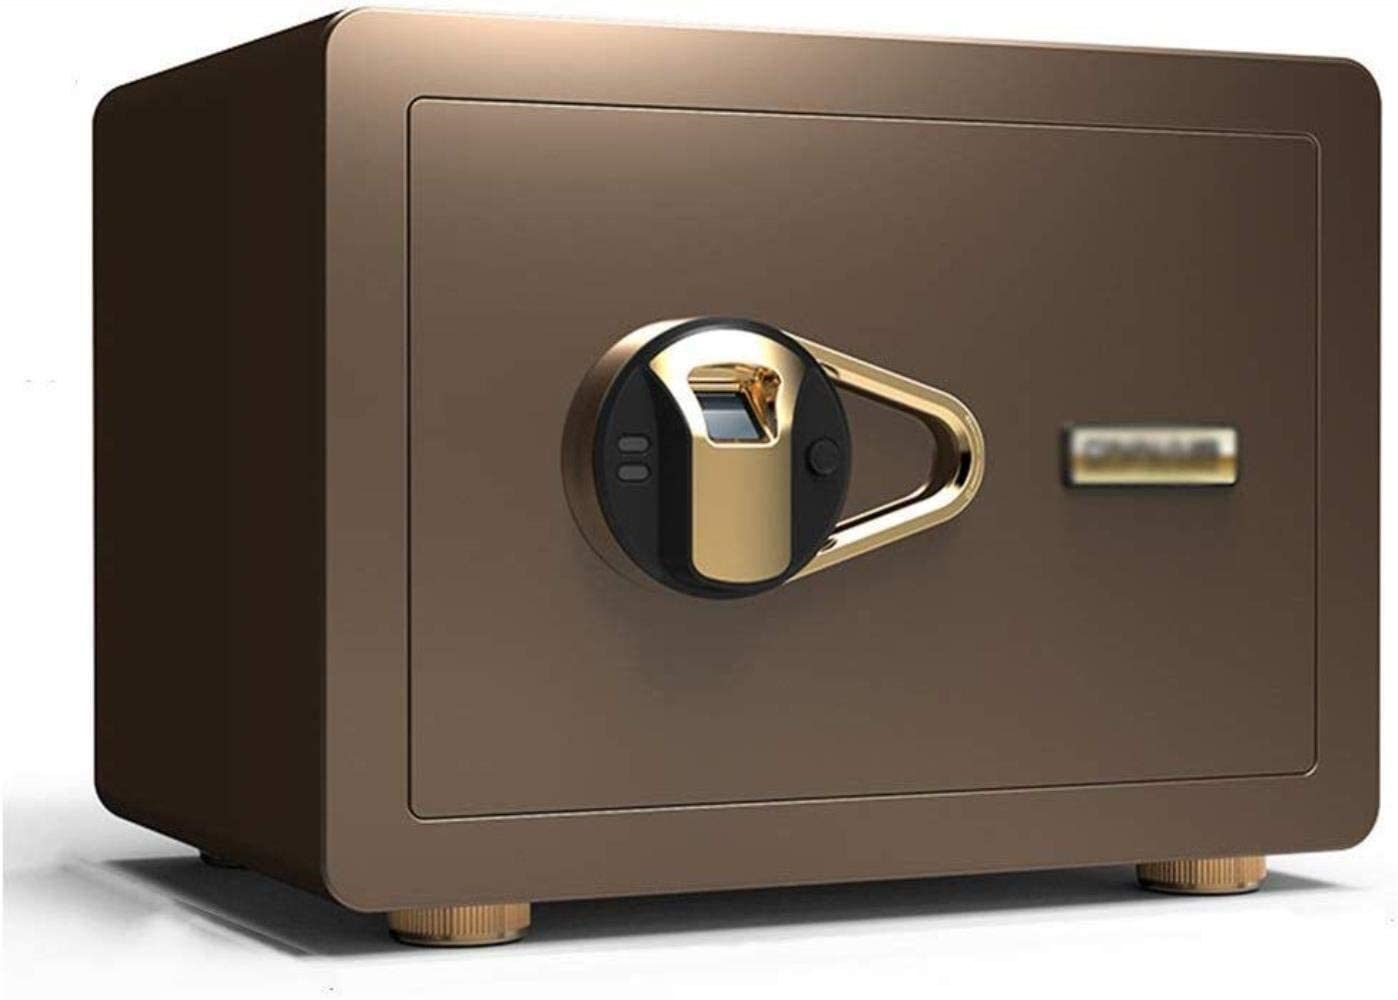 Safes Safes Electronic Home With Medium Home Small Office Fingerprint Password Security Cabinet 35 25 25Cm Safes